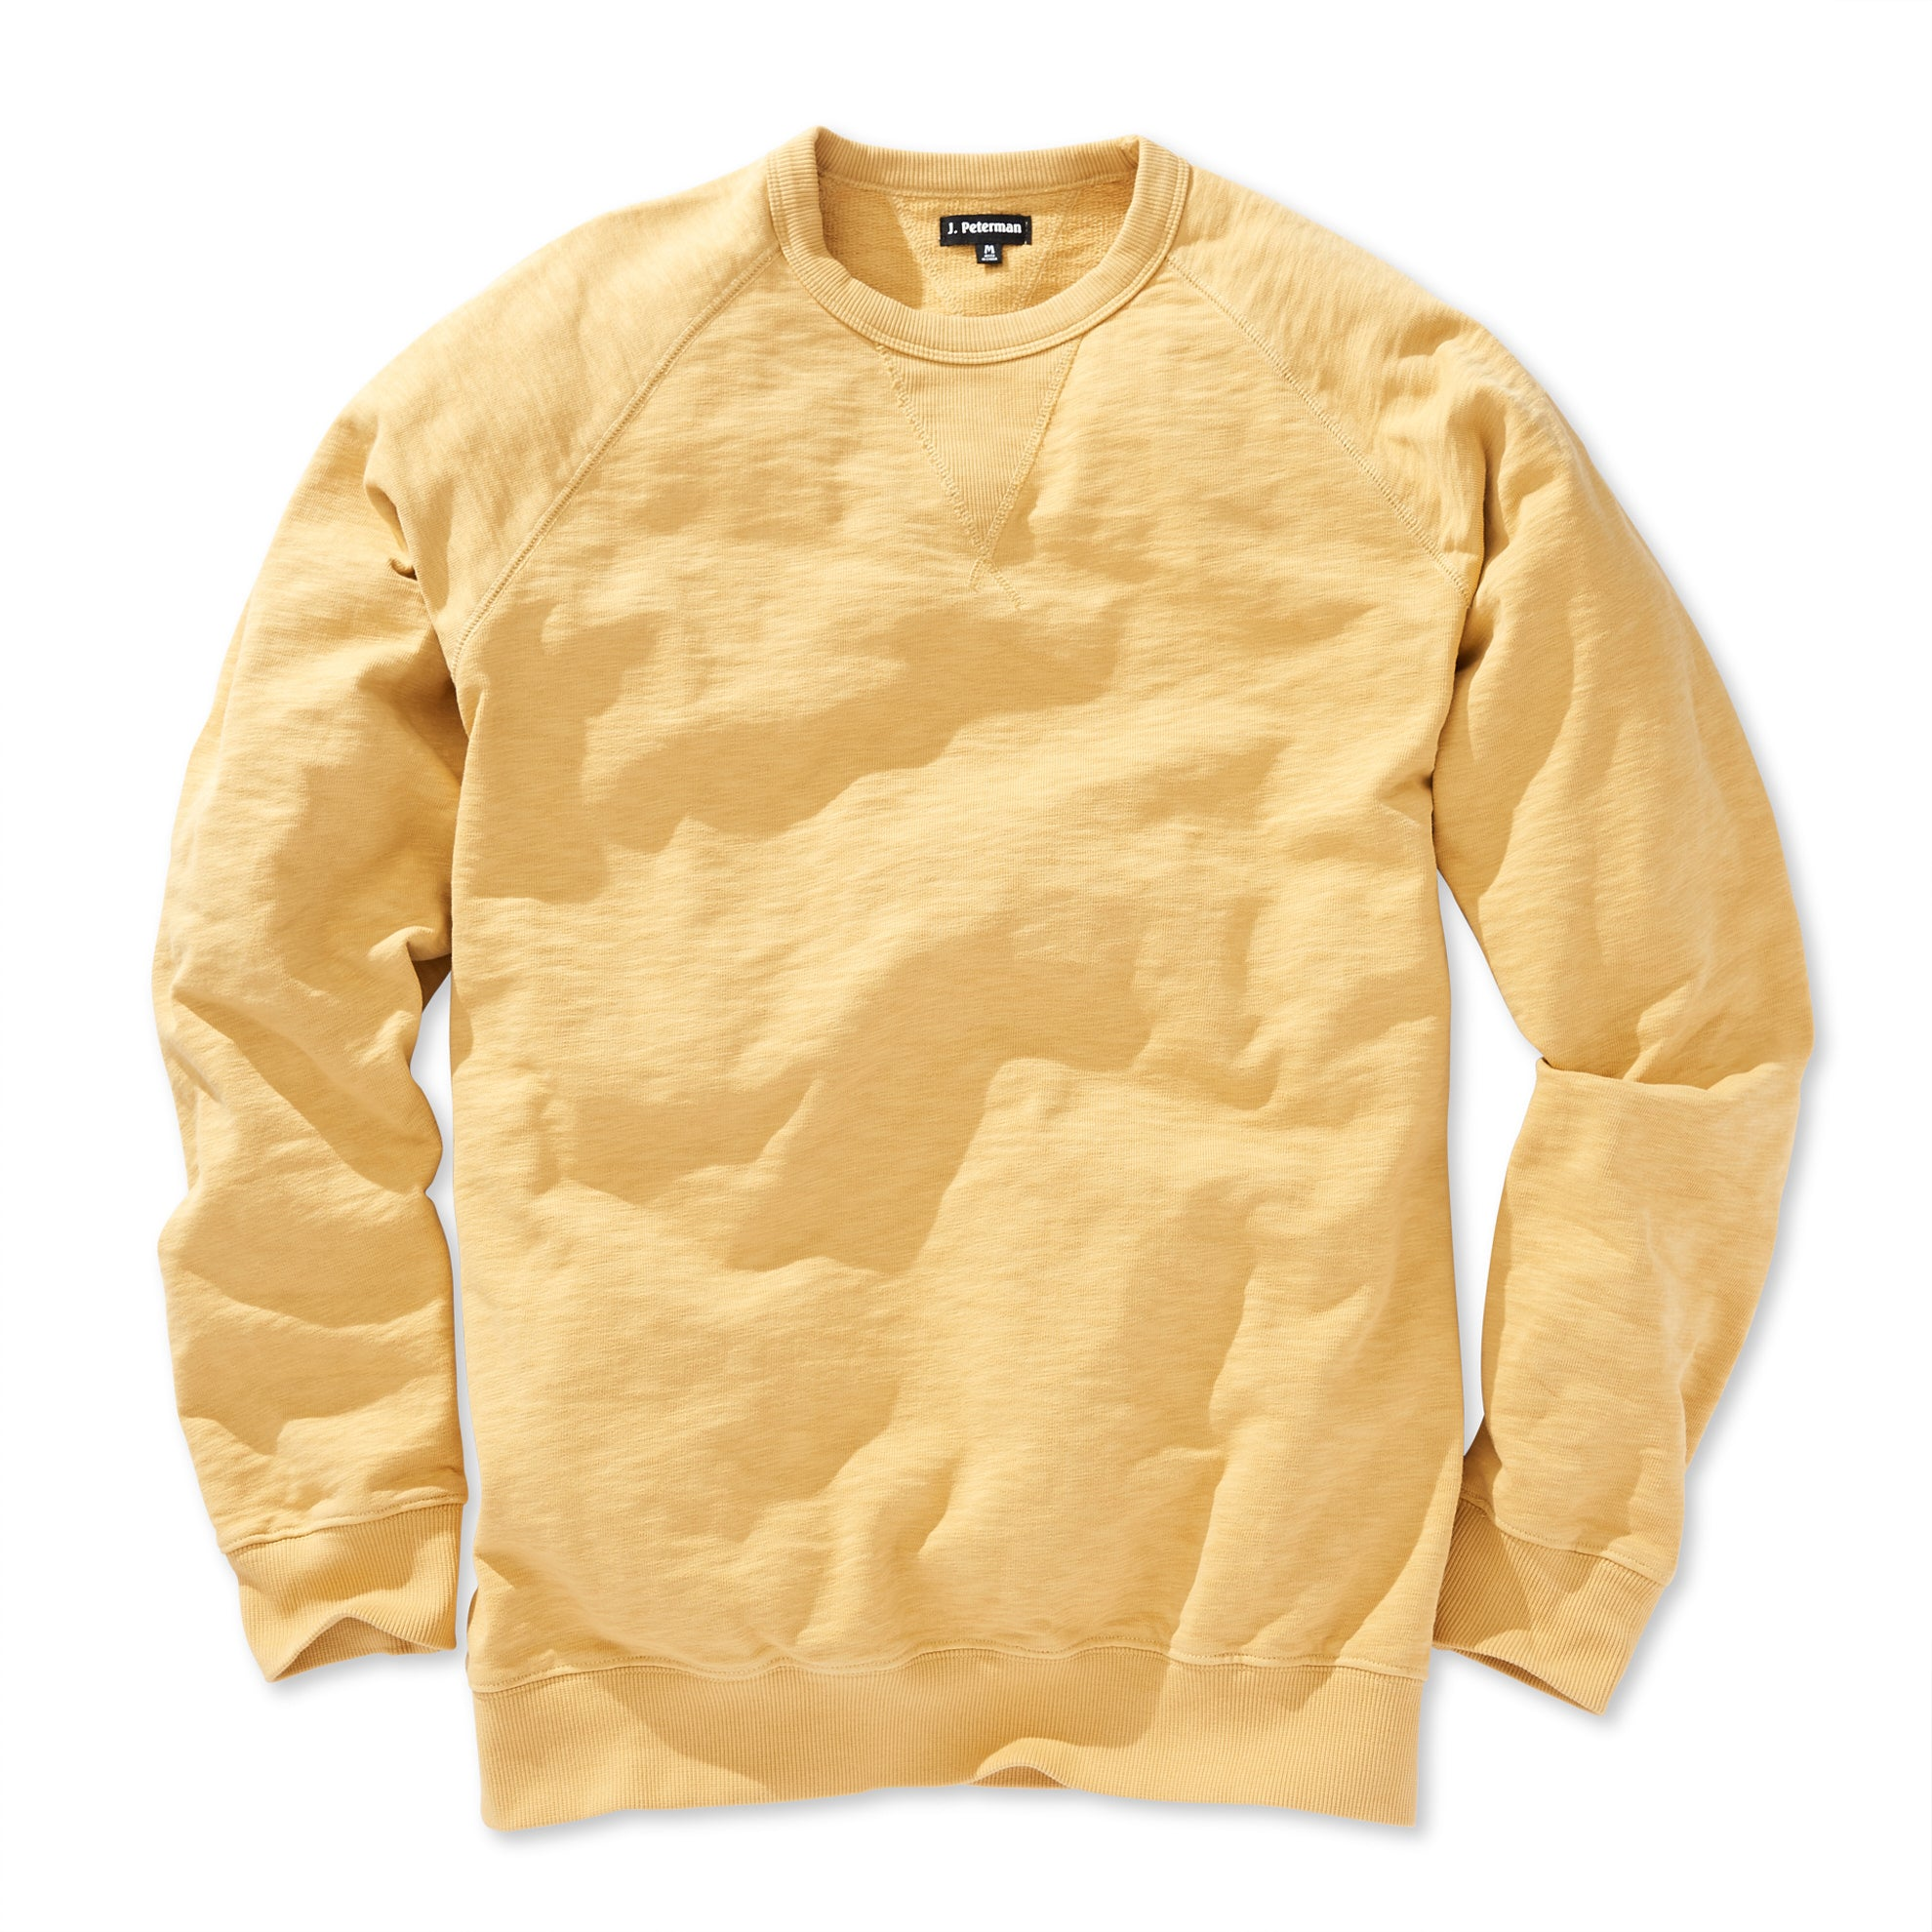 Men's Crewneck Sweatshirt - Spring